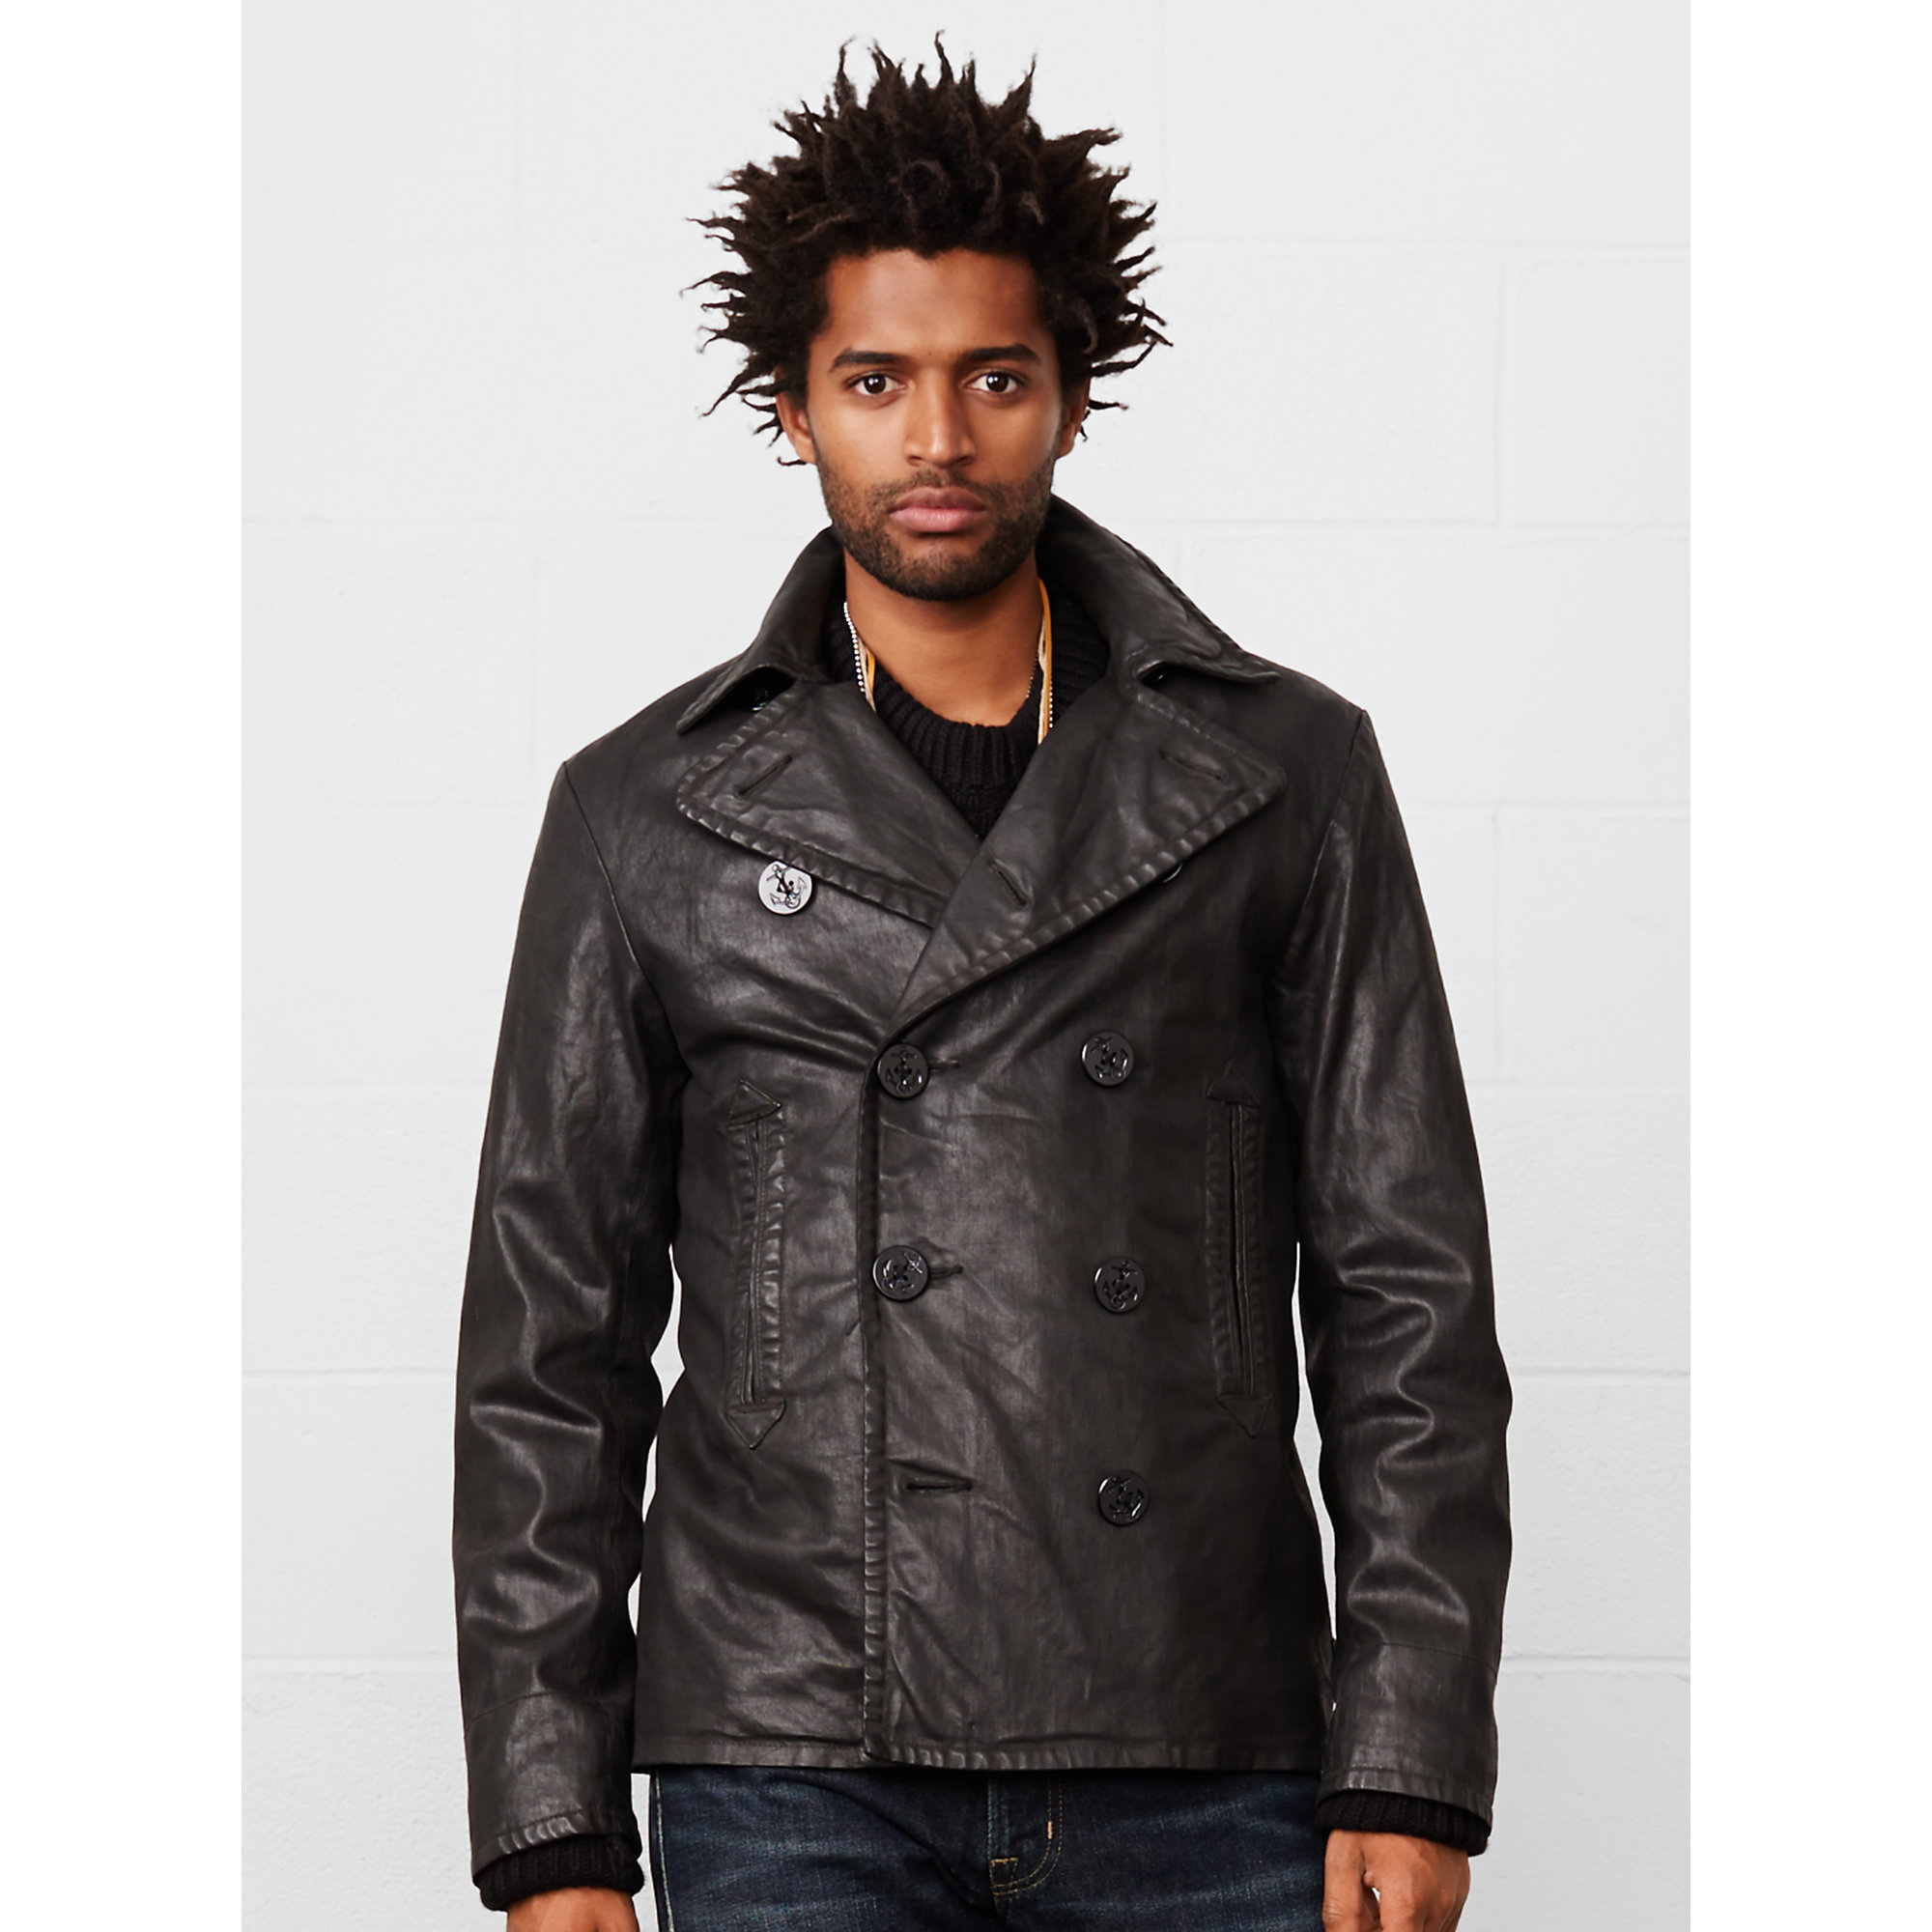 Men's Coats and Jackets Get wrapped up with Topman's selection of men's coats and jackets. We have all the best outerwear styles, find the perfect parka to drape over your suit, go casual with a denim/ bomber jacket or for smarter occasions invest in a classic overcoat with your favourite pair of jeans.